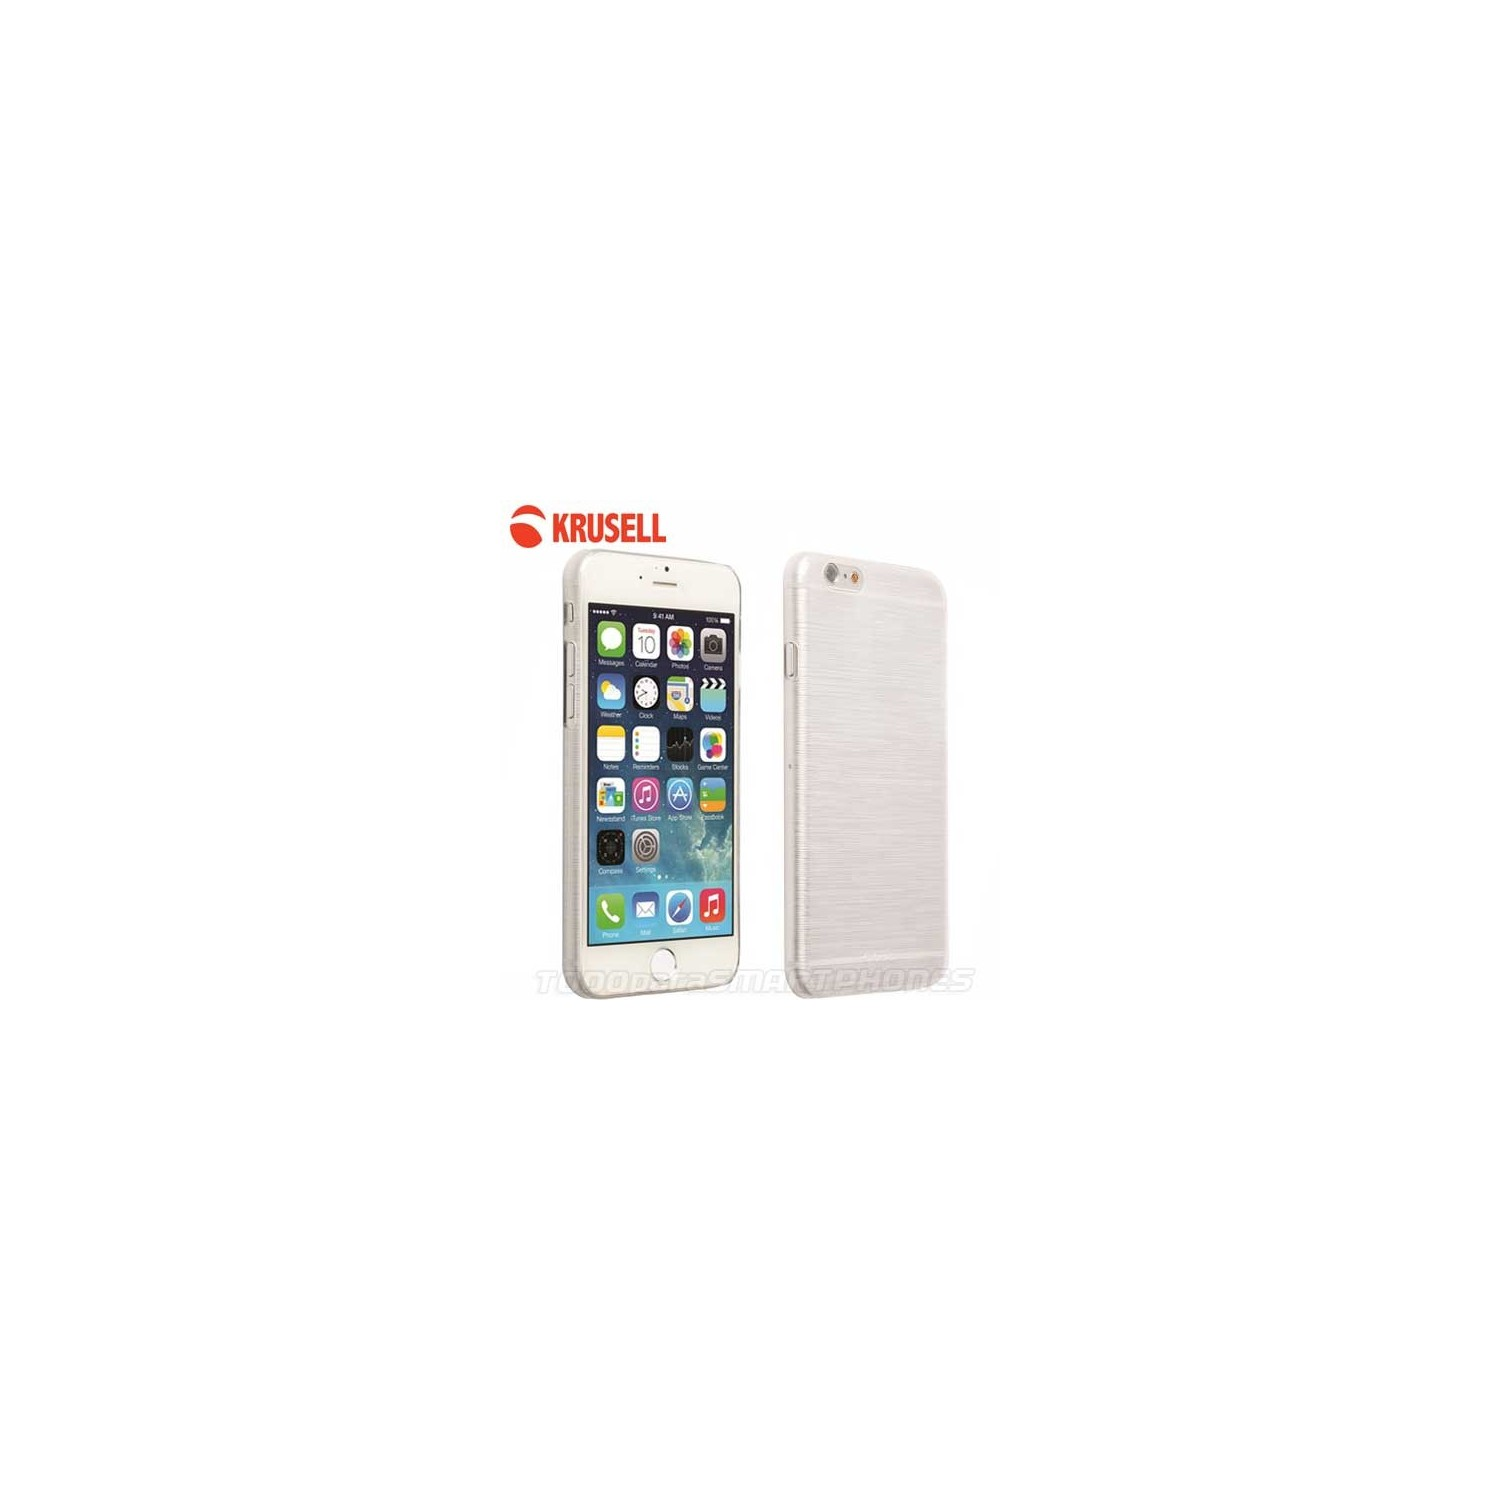 Case - Krusell Boden Cover for iPhone 6s White